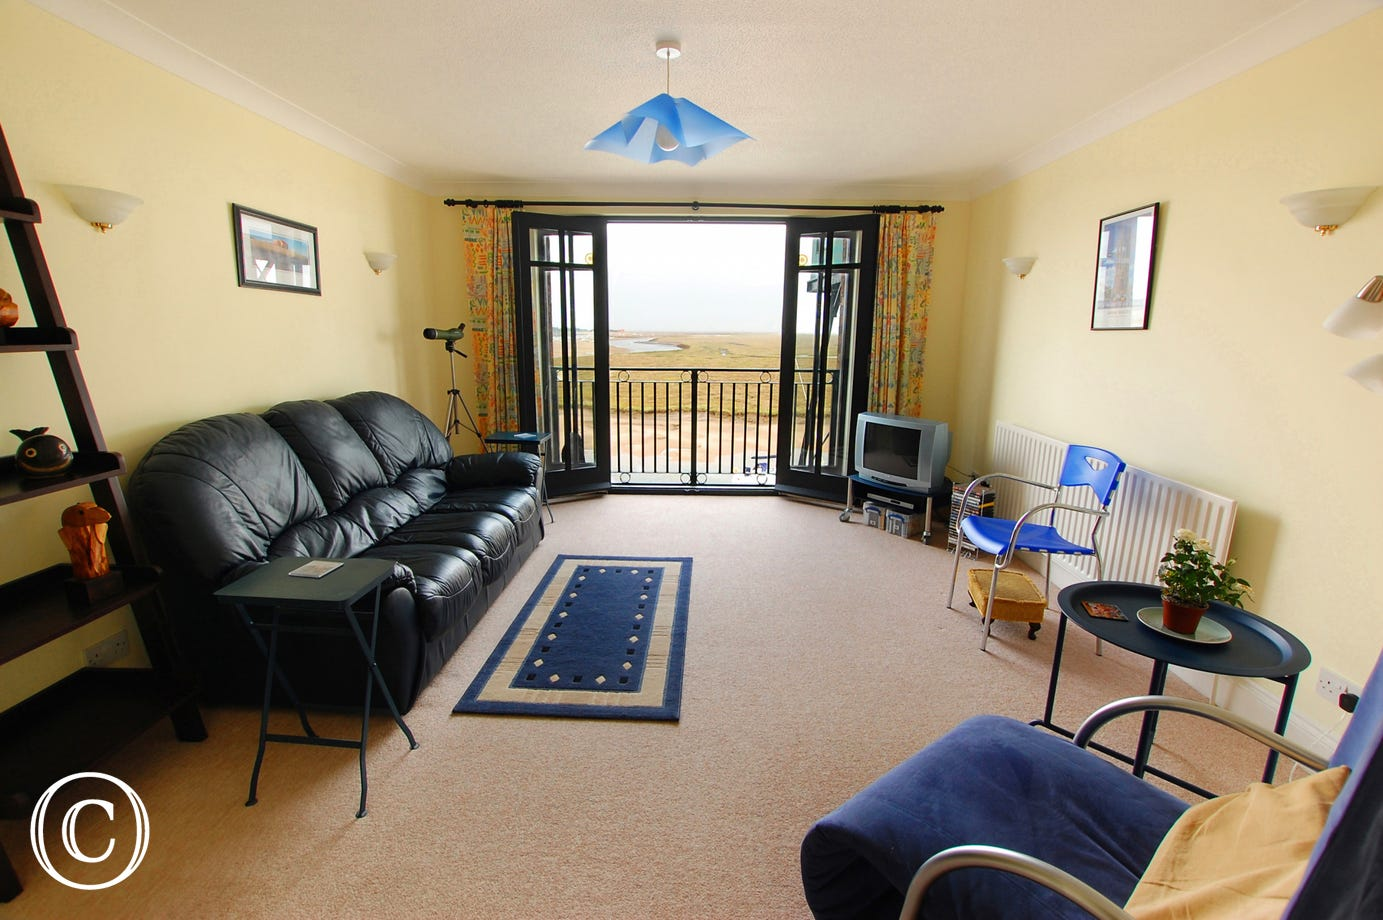 A comfortable room with spectacular views across Wells harbour through the French windows.